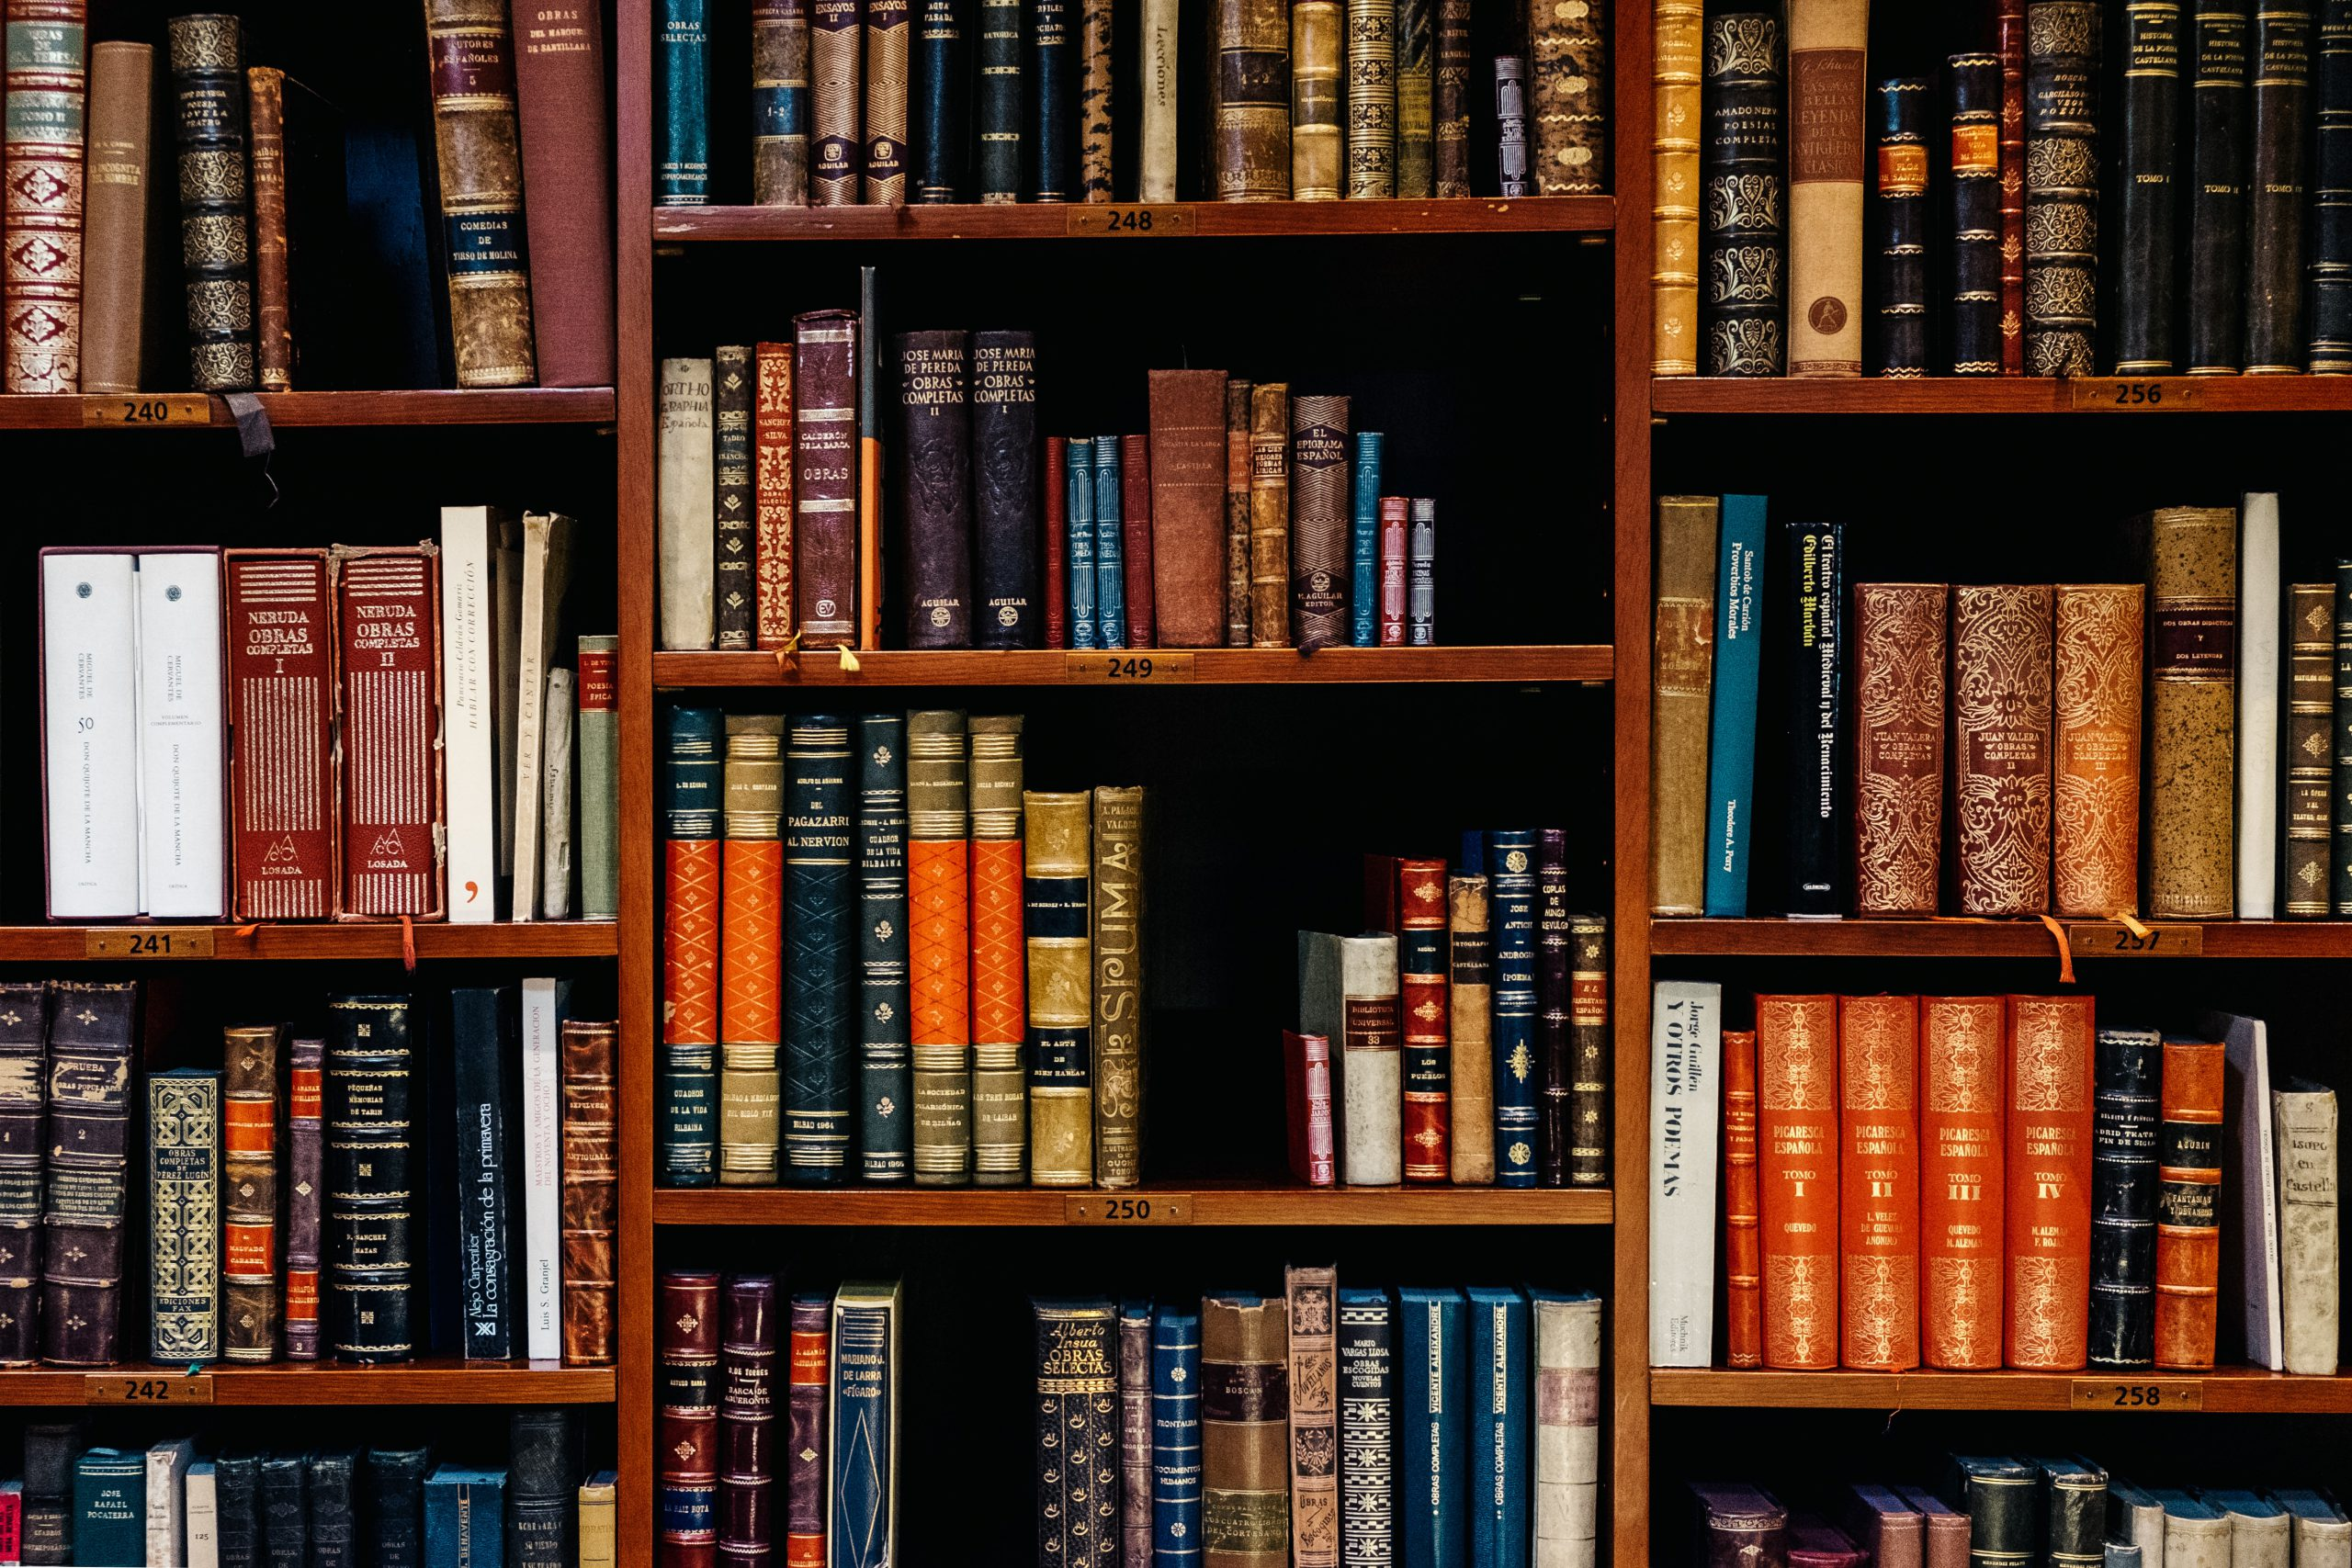 Bookshelf with many older looking books